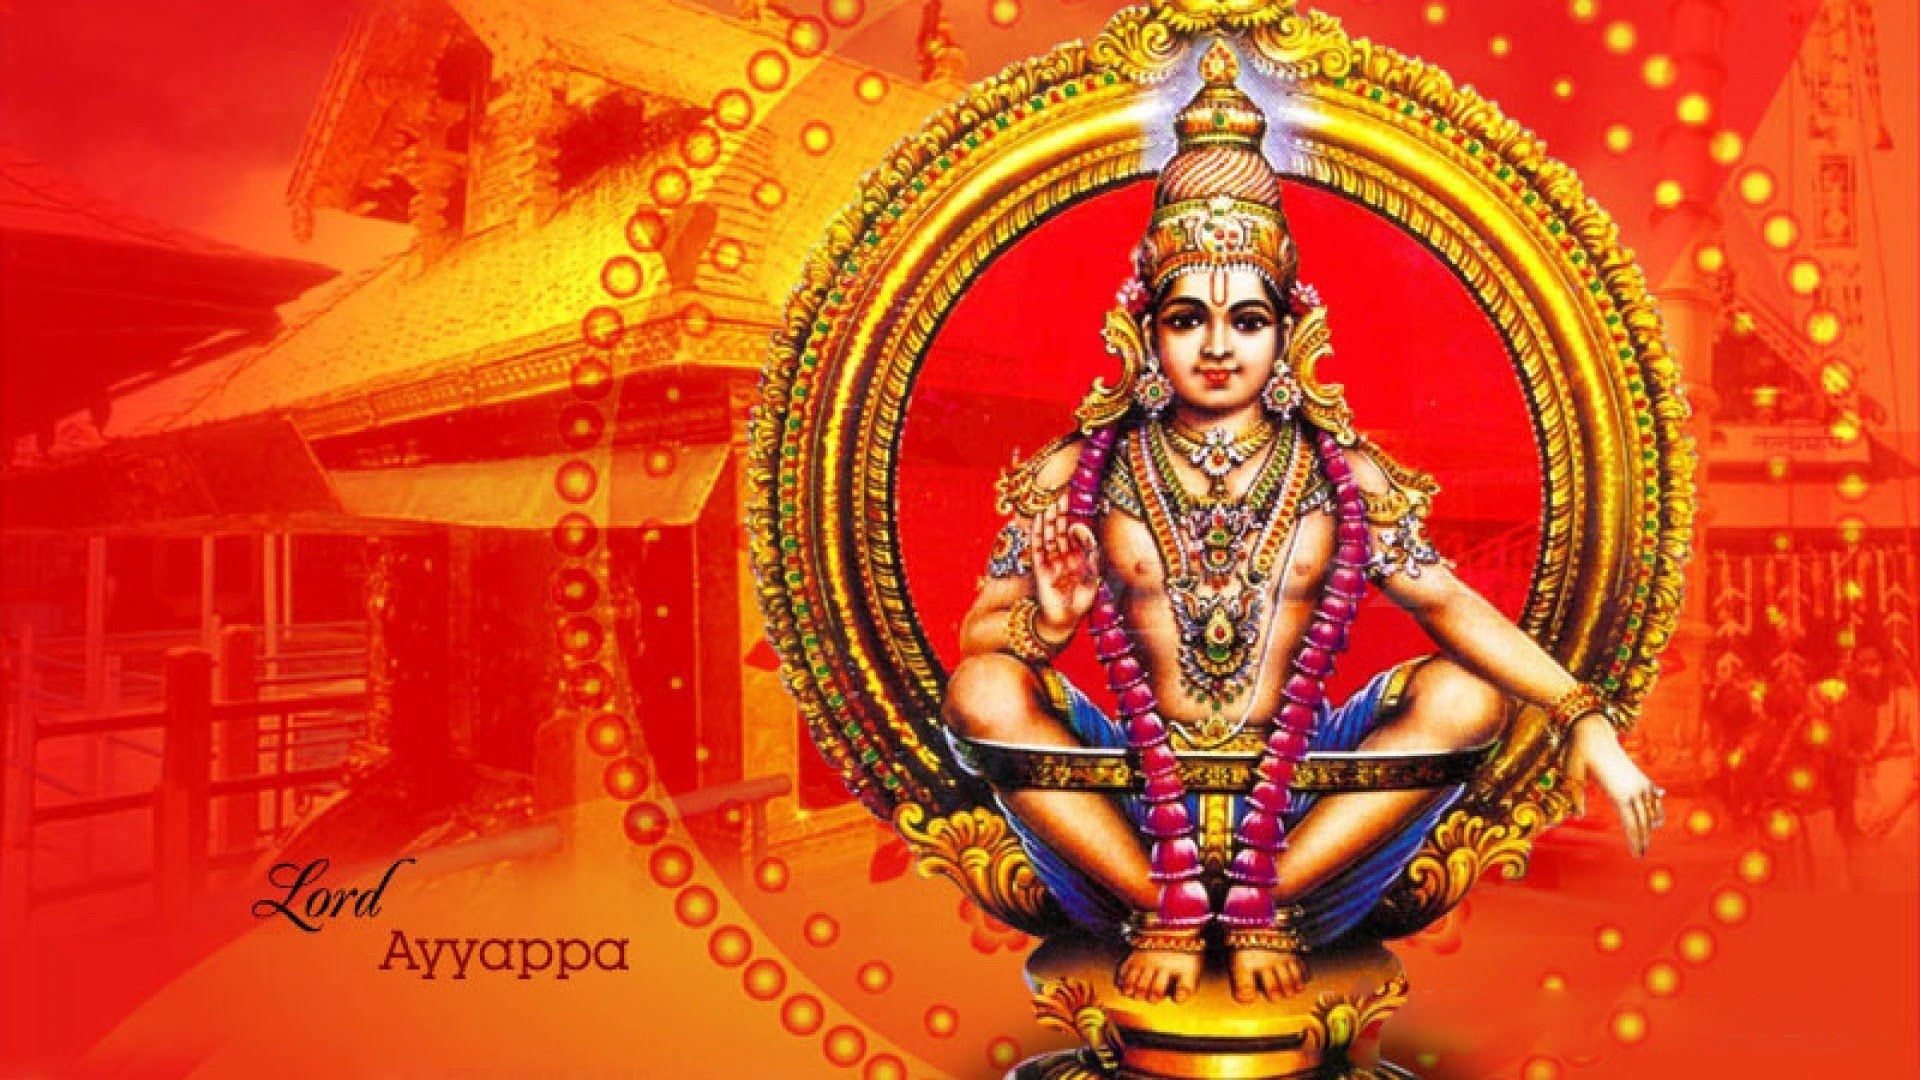 3d Ayyappa Wallpapers High Resolution Ayyappa 1080p Hd Images Hindu Gods And Goddesses